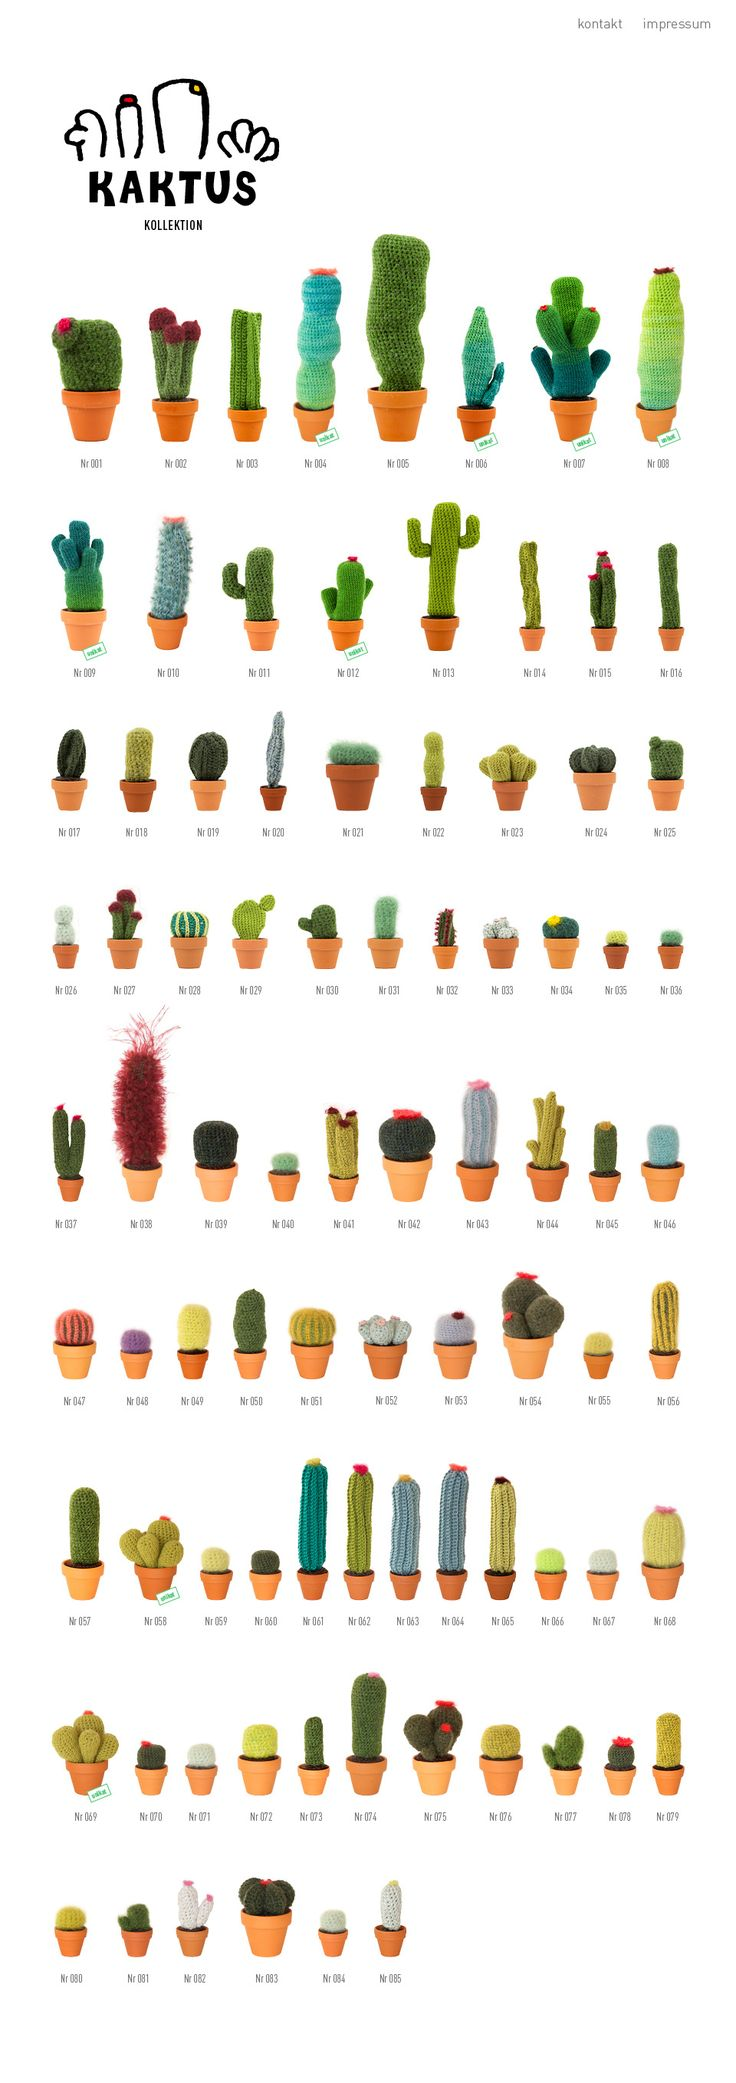 1000+ images about cacti on Pinterest.